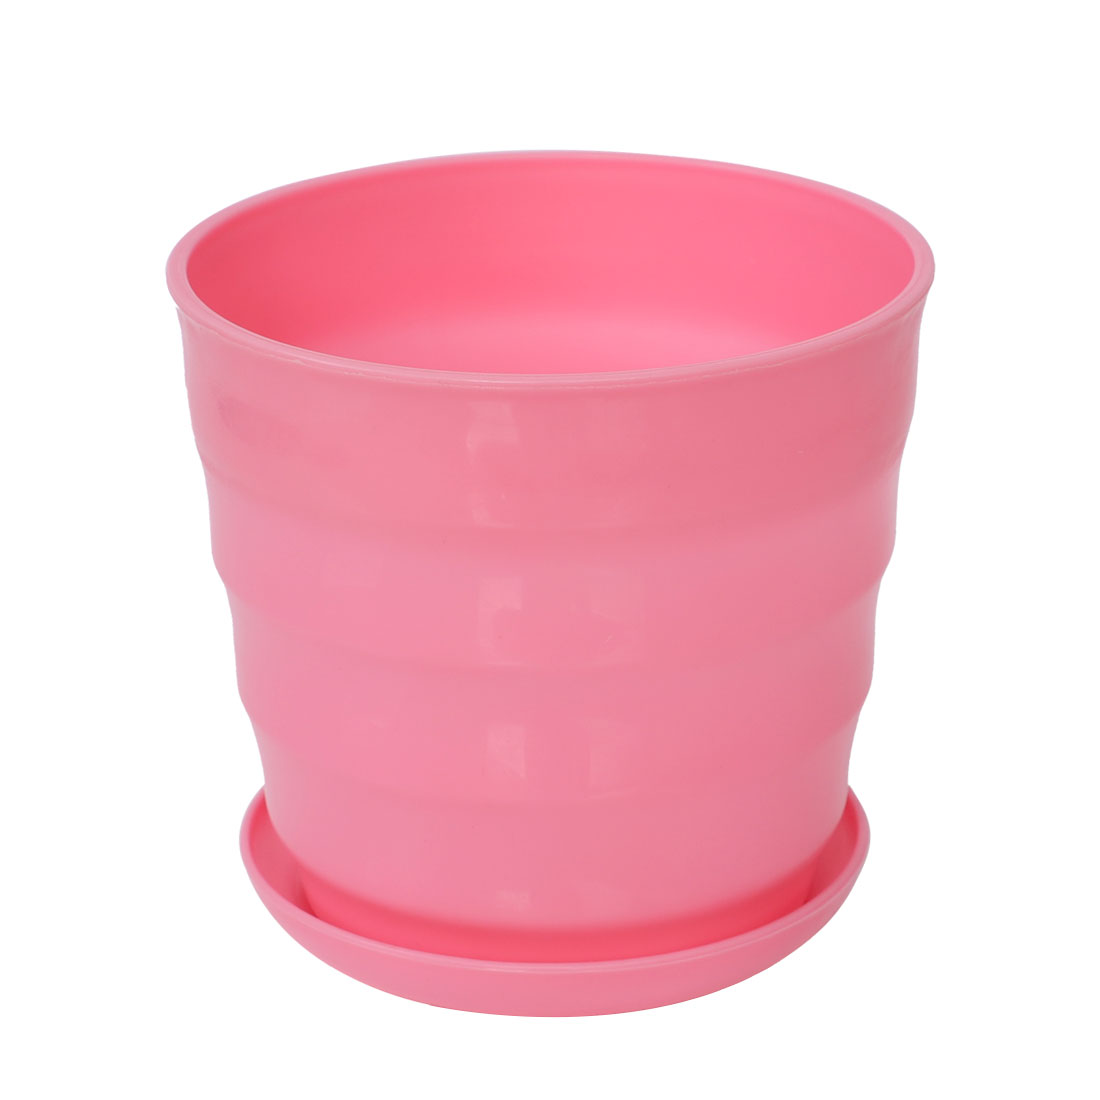 Home Office Desk Plastic Cylindrical Plant Planter Holder Flower Pot Pink